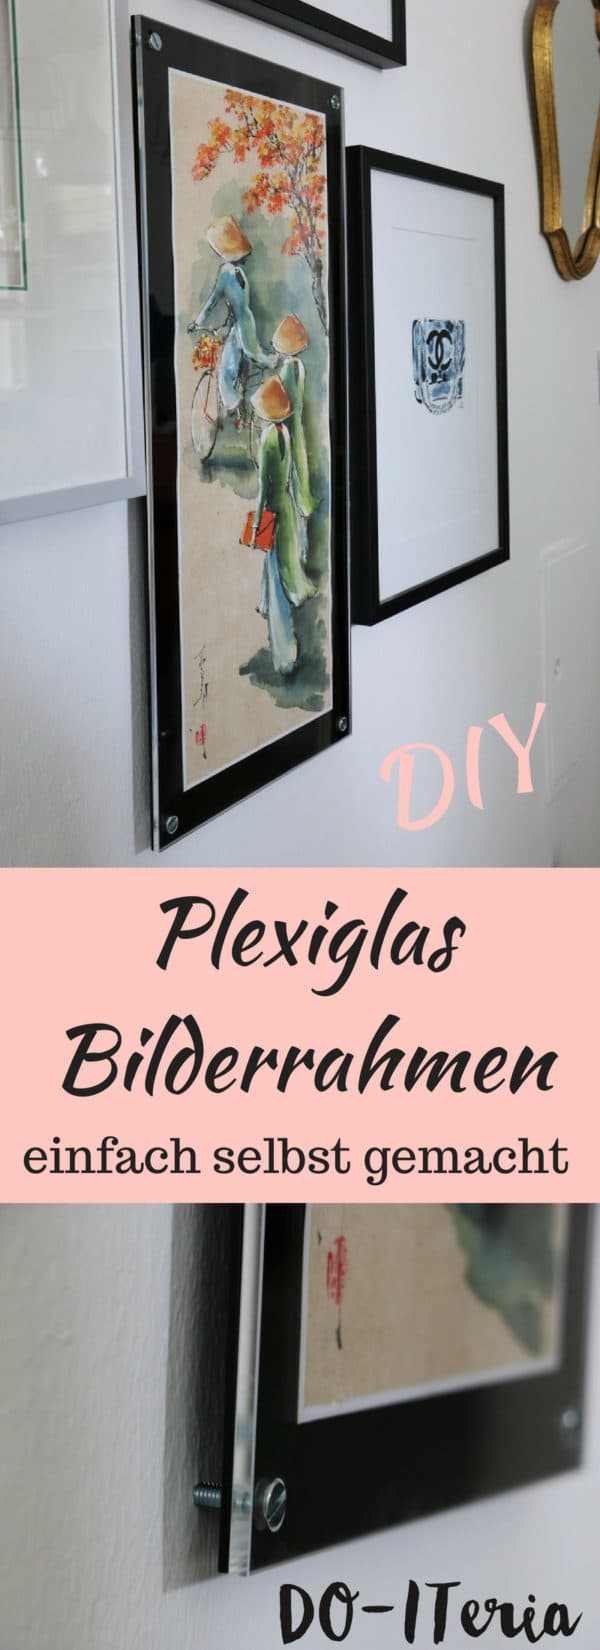 diy plexiglas bilderrahmen handmade kultur. Black Bedroom Furniture Sets. Home Design Ideas